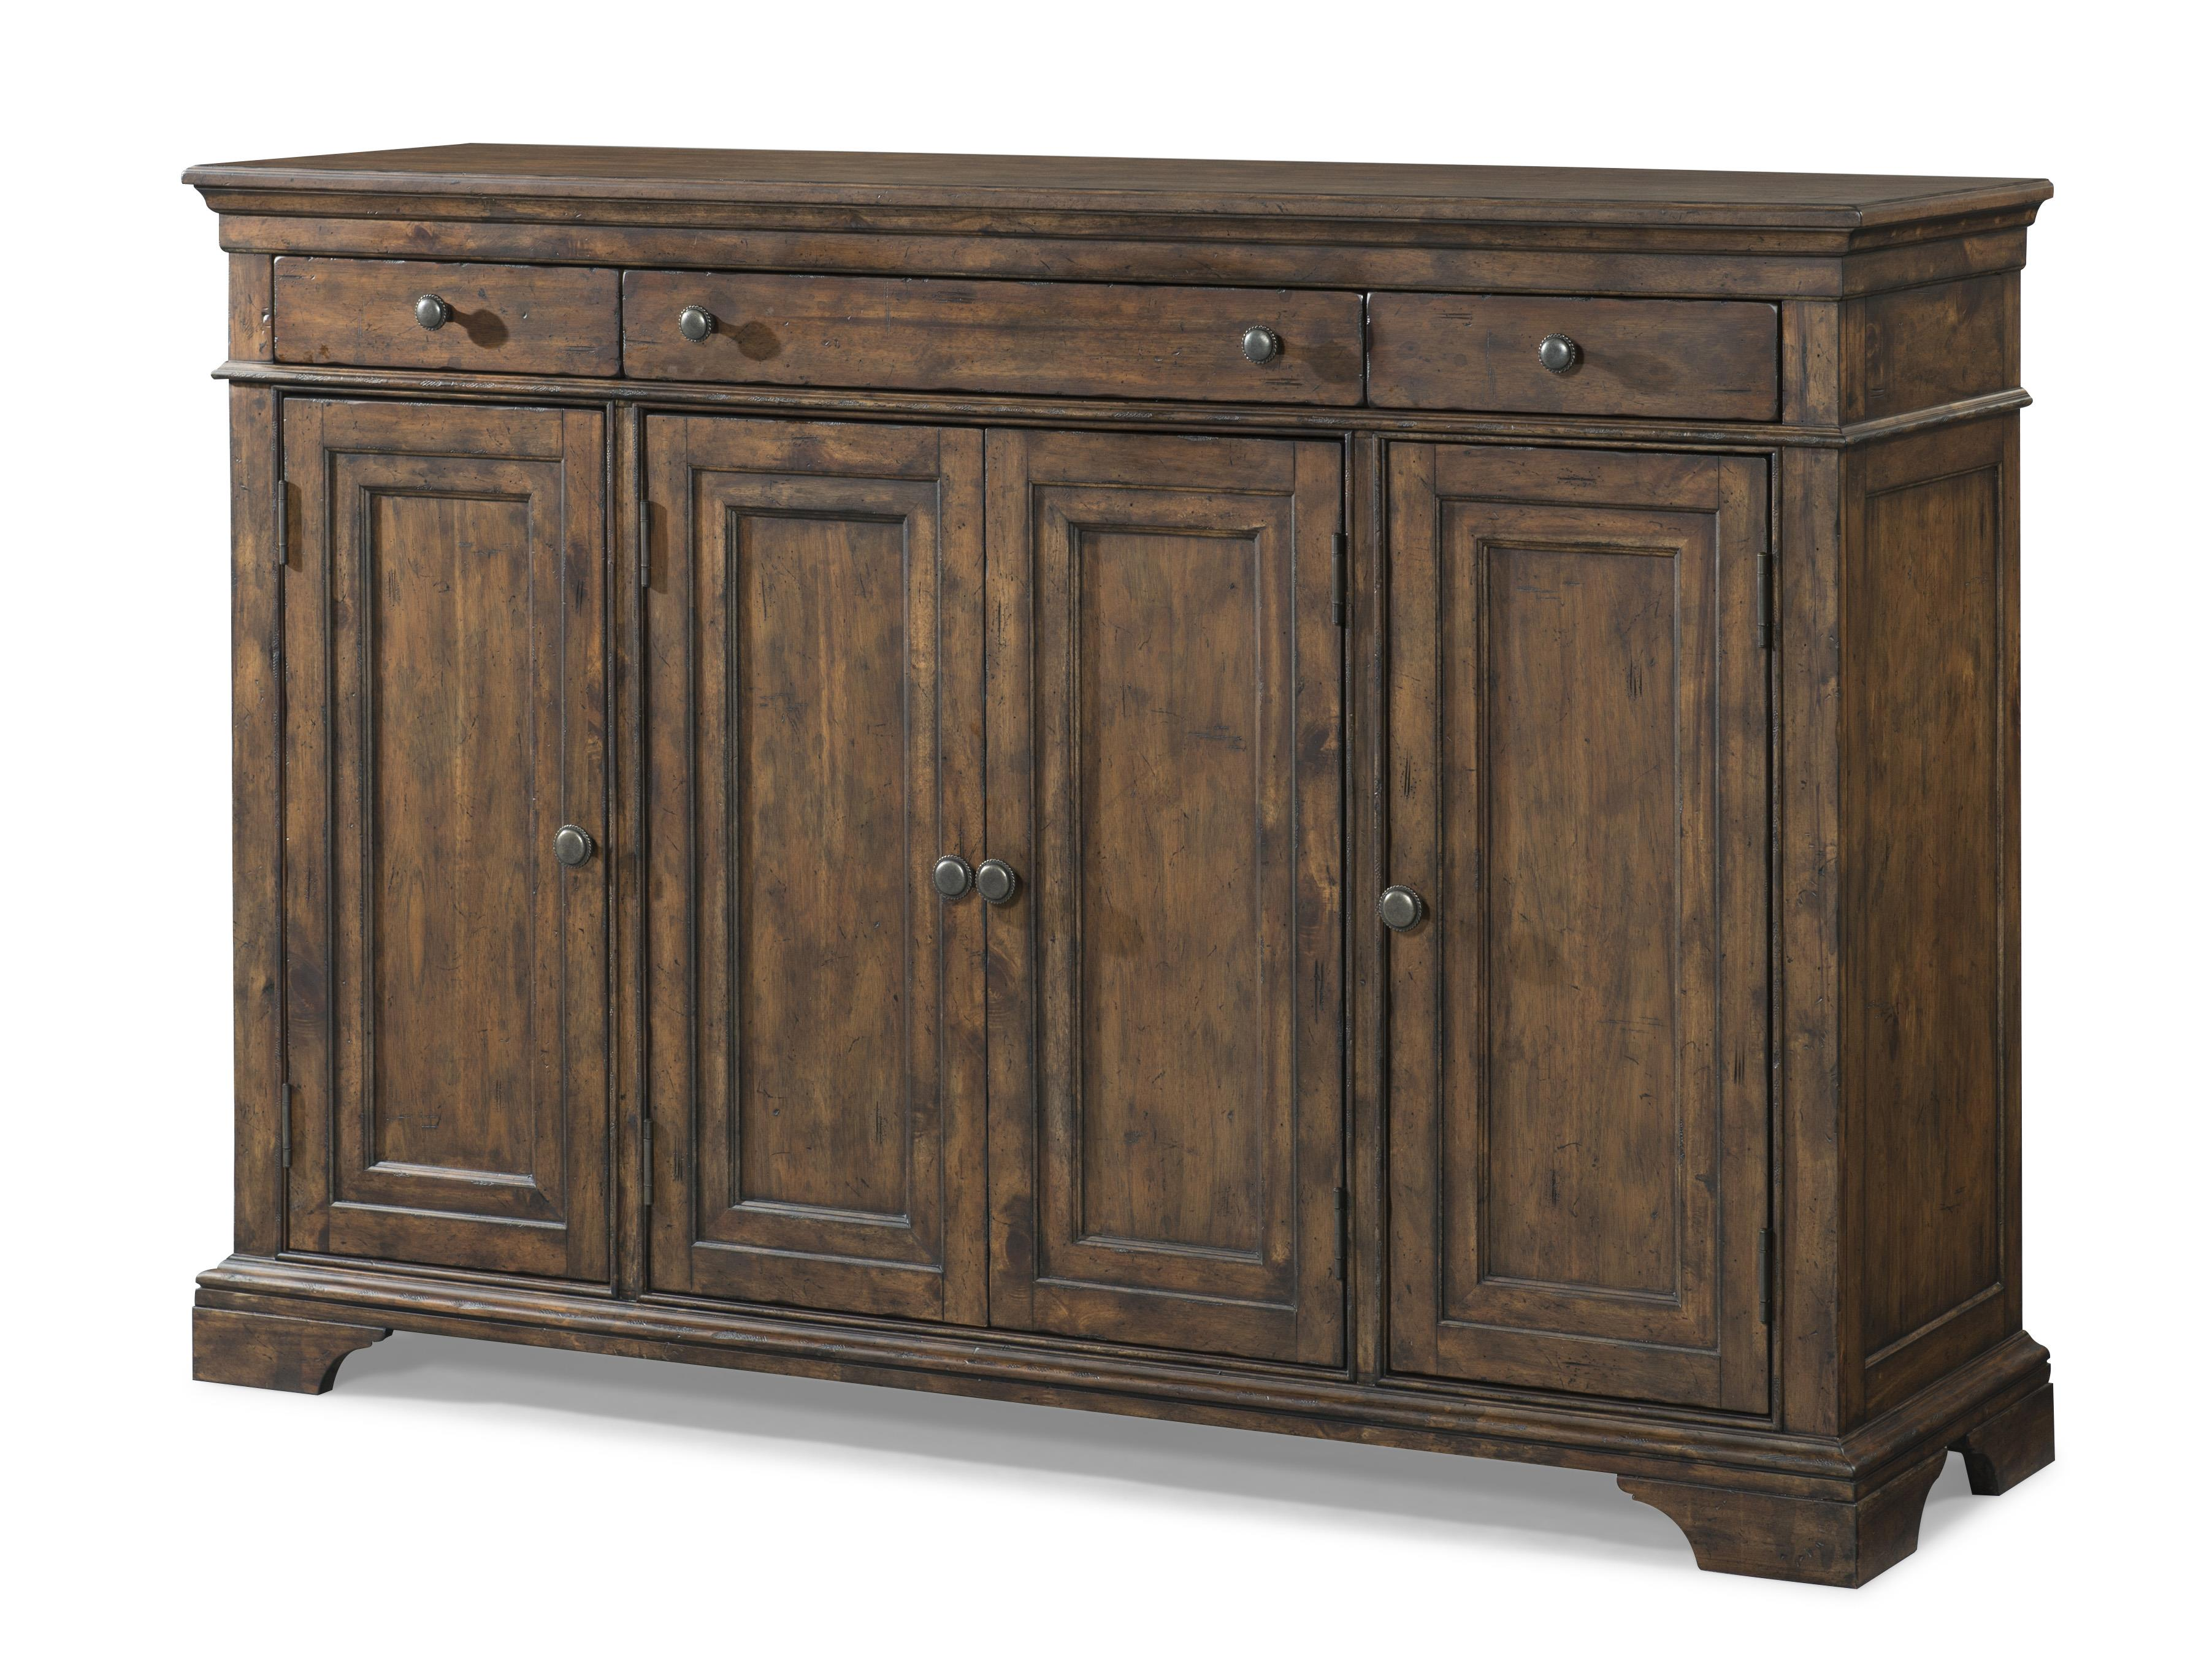 Trisha Yearwood Home Family Reunion Buffet by Trisha Yearwood Home Collection by Klaussner at Hudson's Furniture